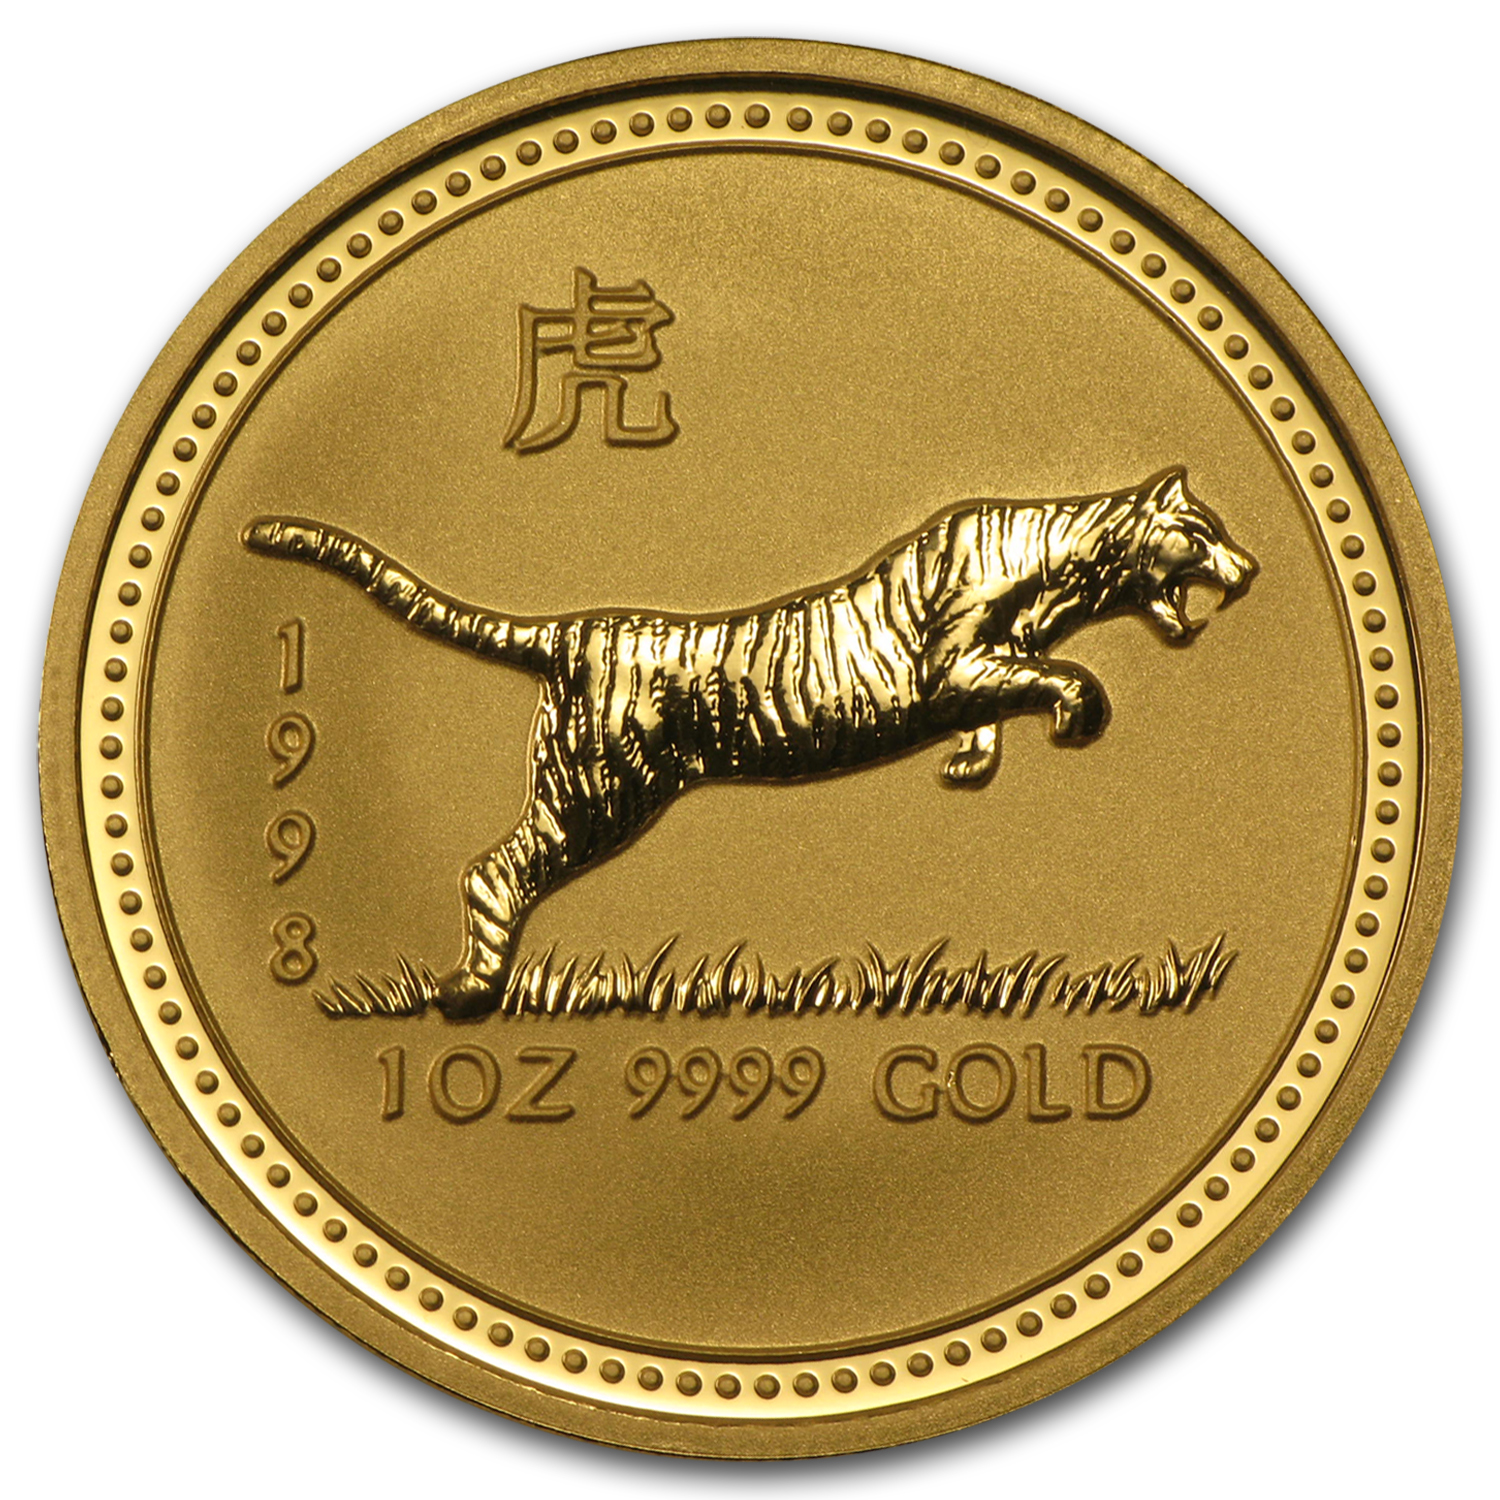 1998 1 oz Gold Year of the Tiger Lunar Coin (Series I)